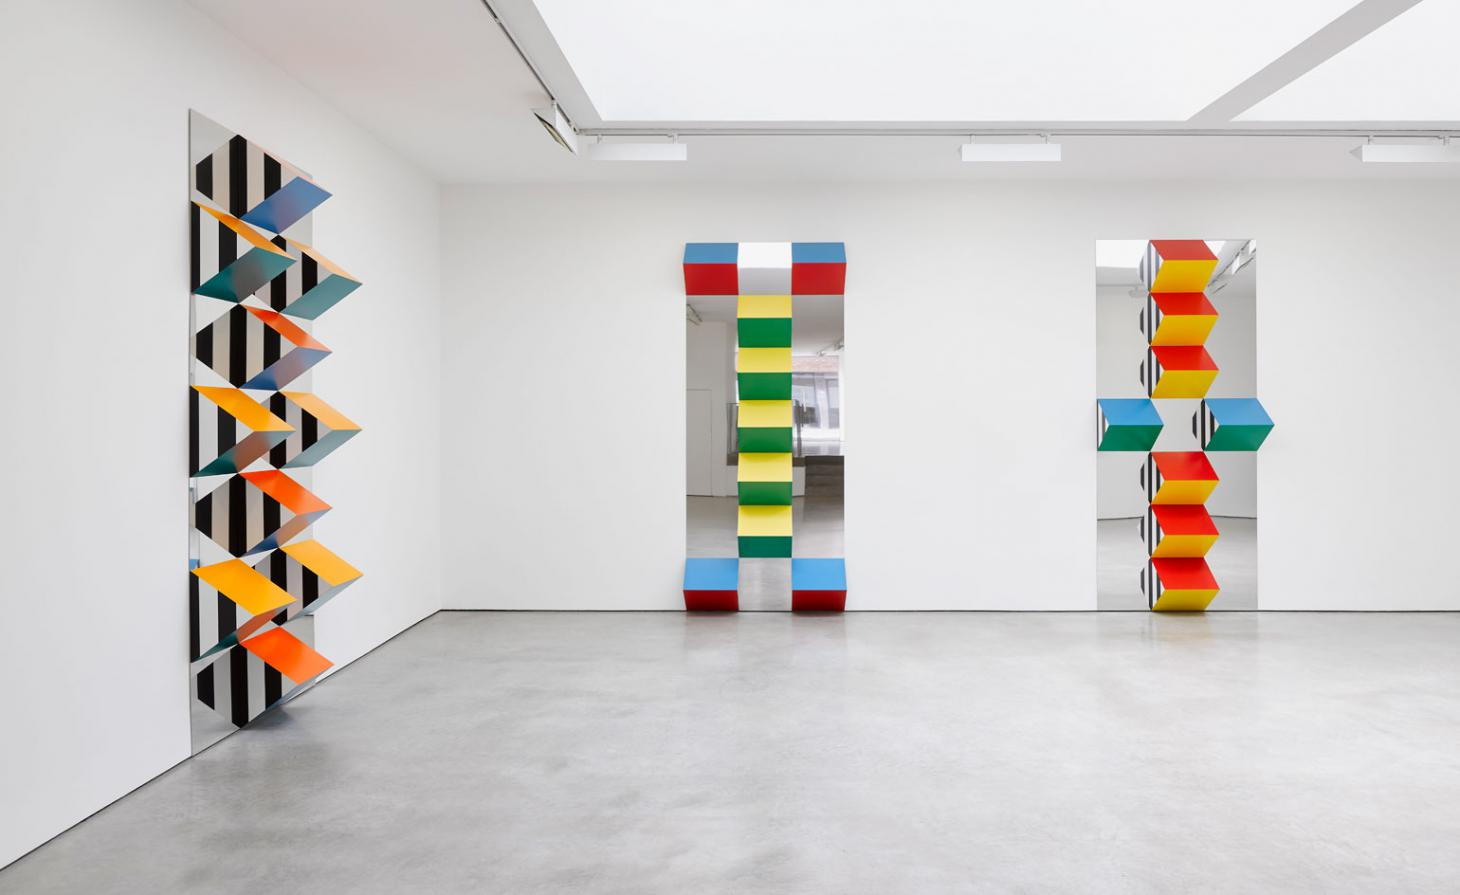 Daniel Buren at the Lisson Gallery